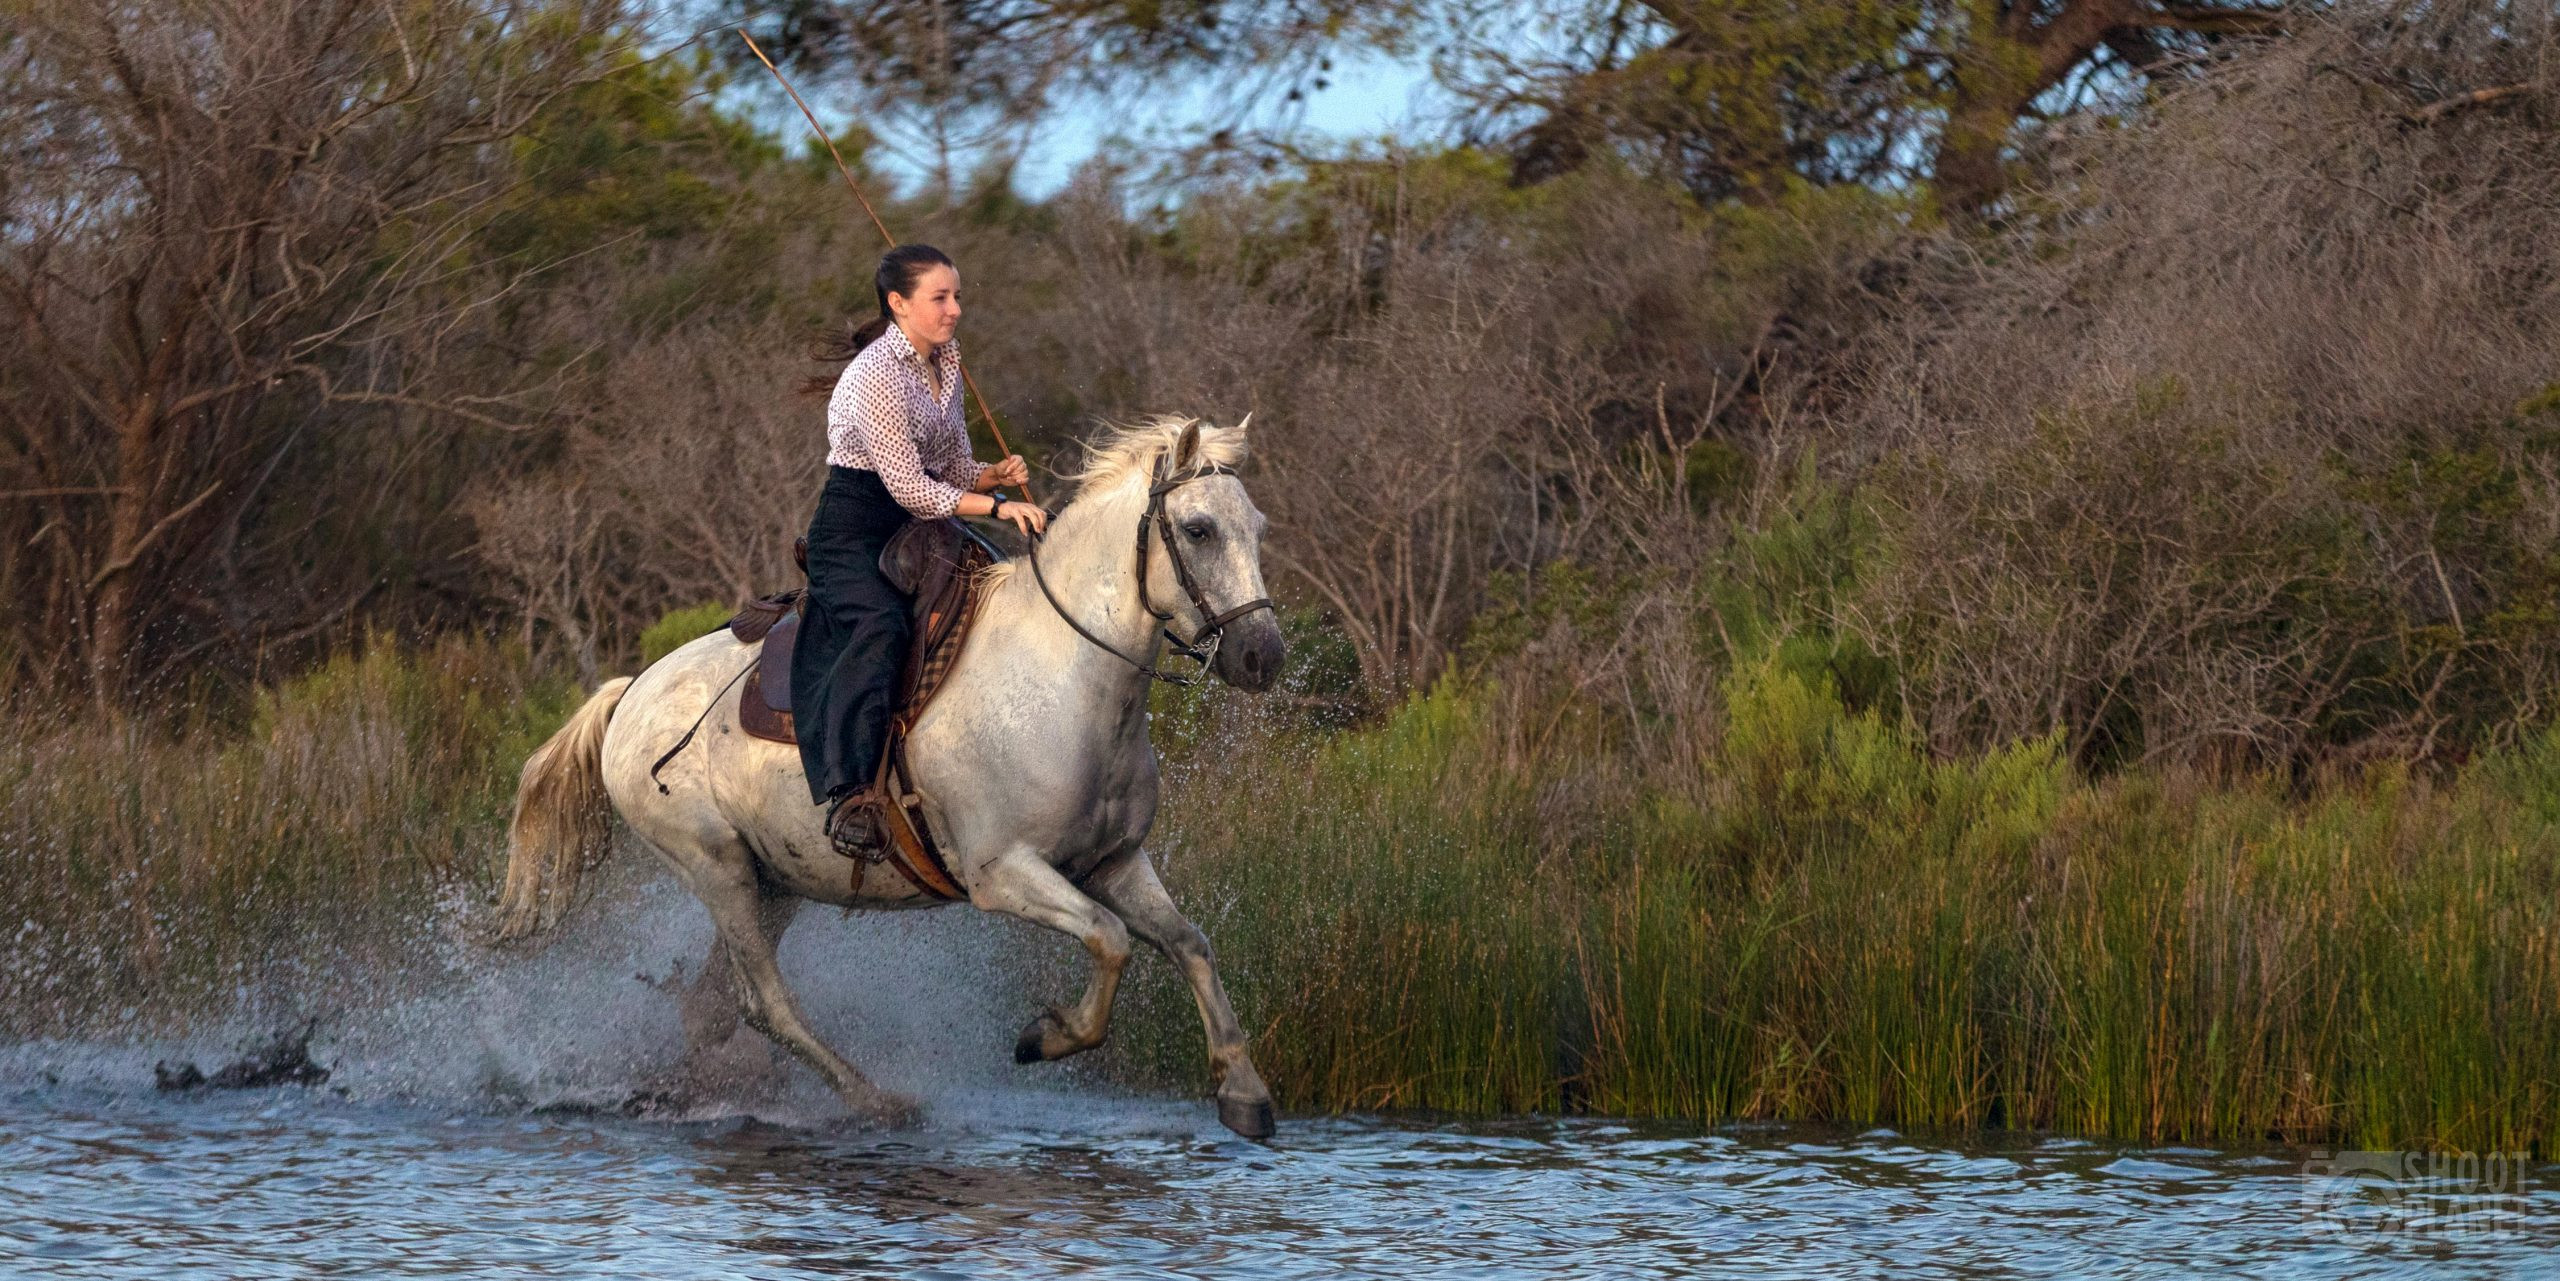 Cowgirl and horse in a Camargue Pond, France